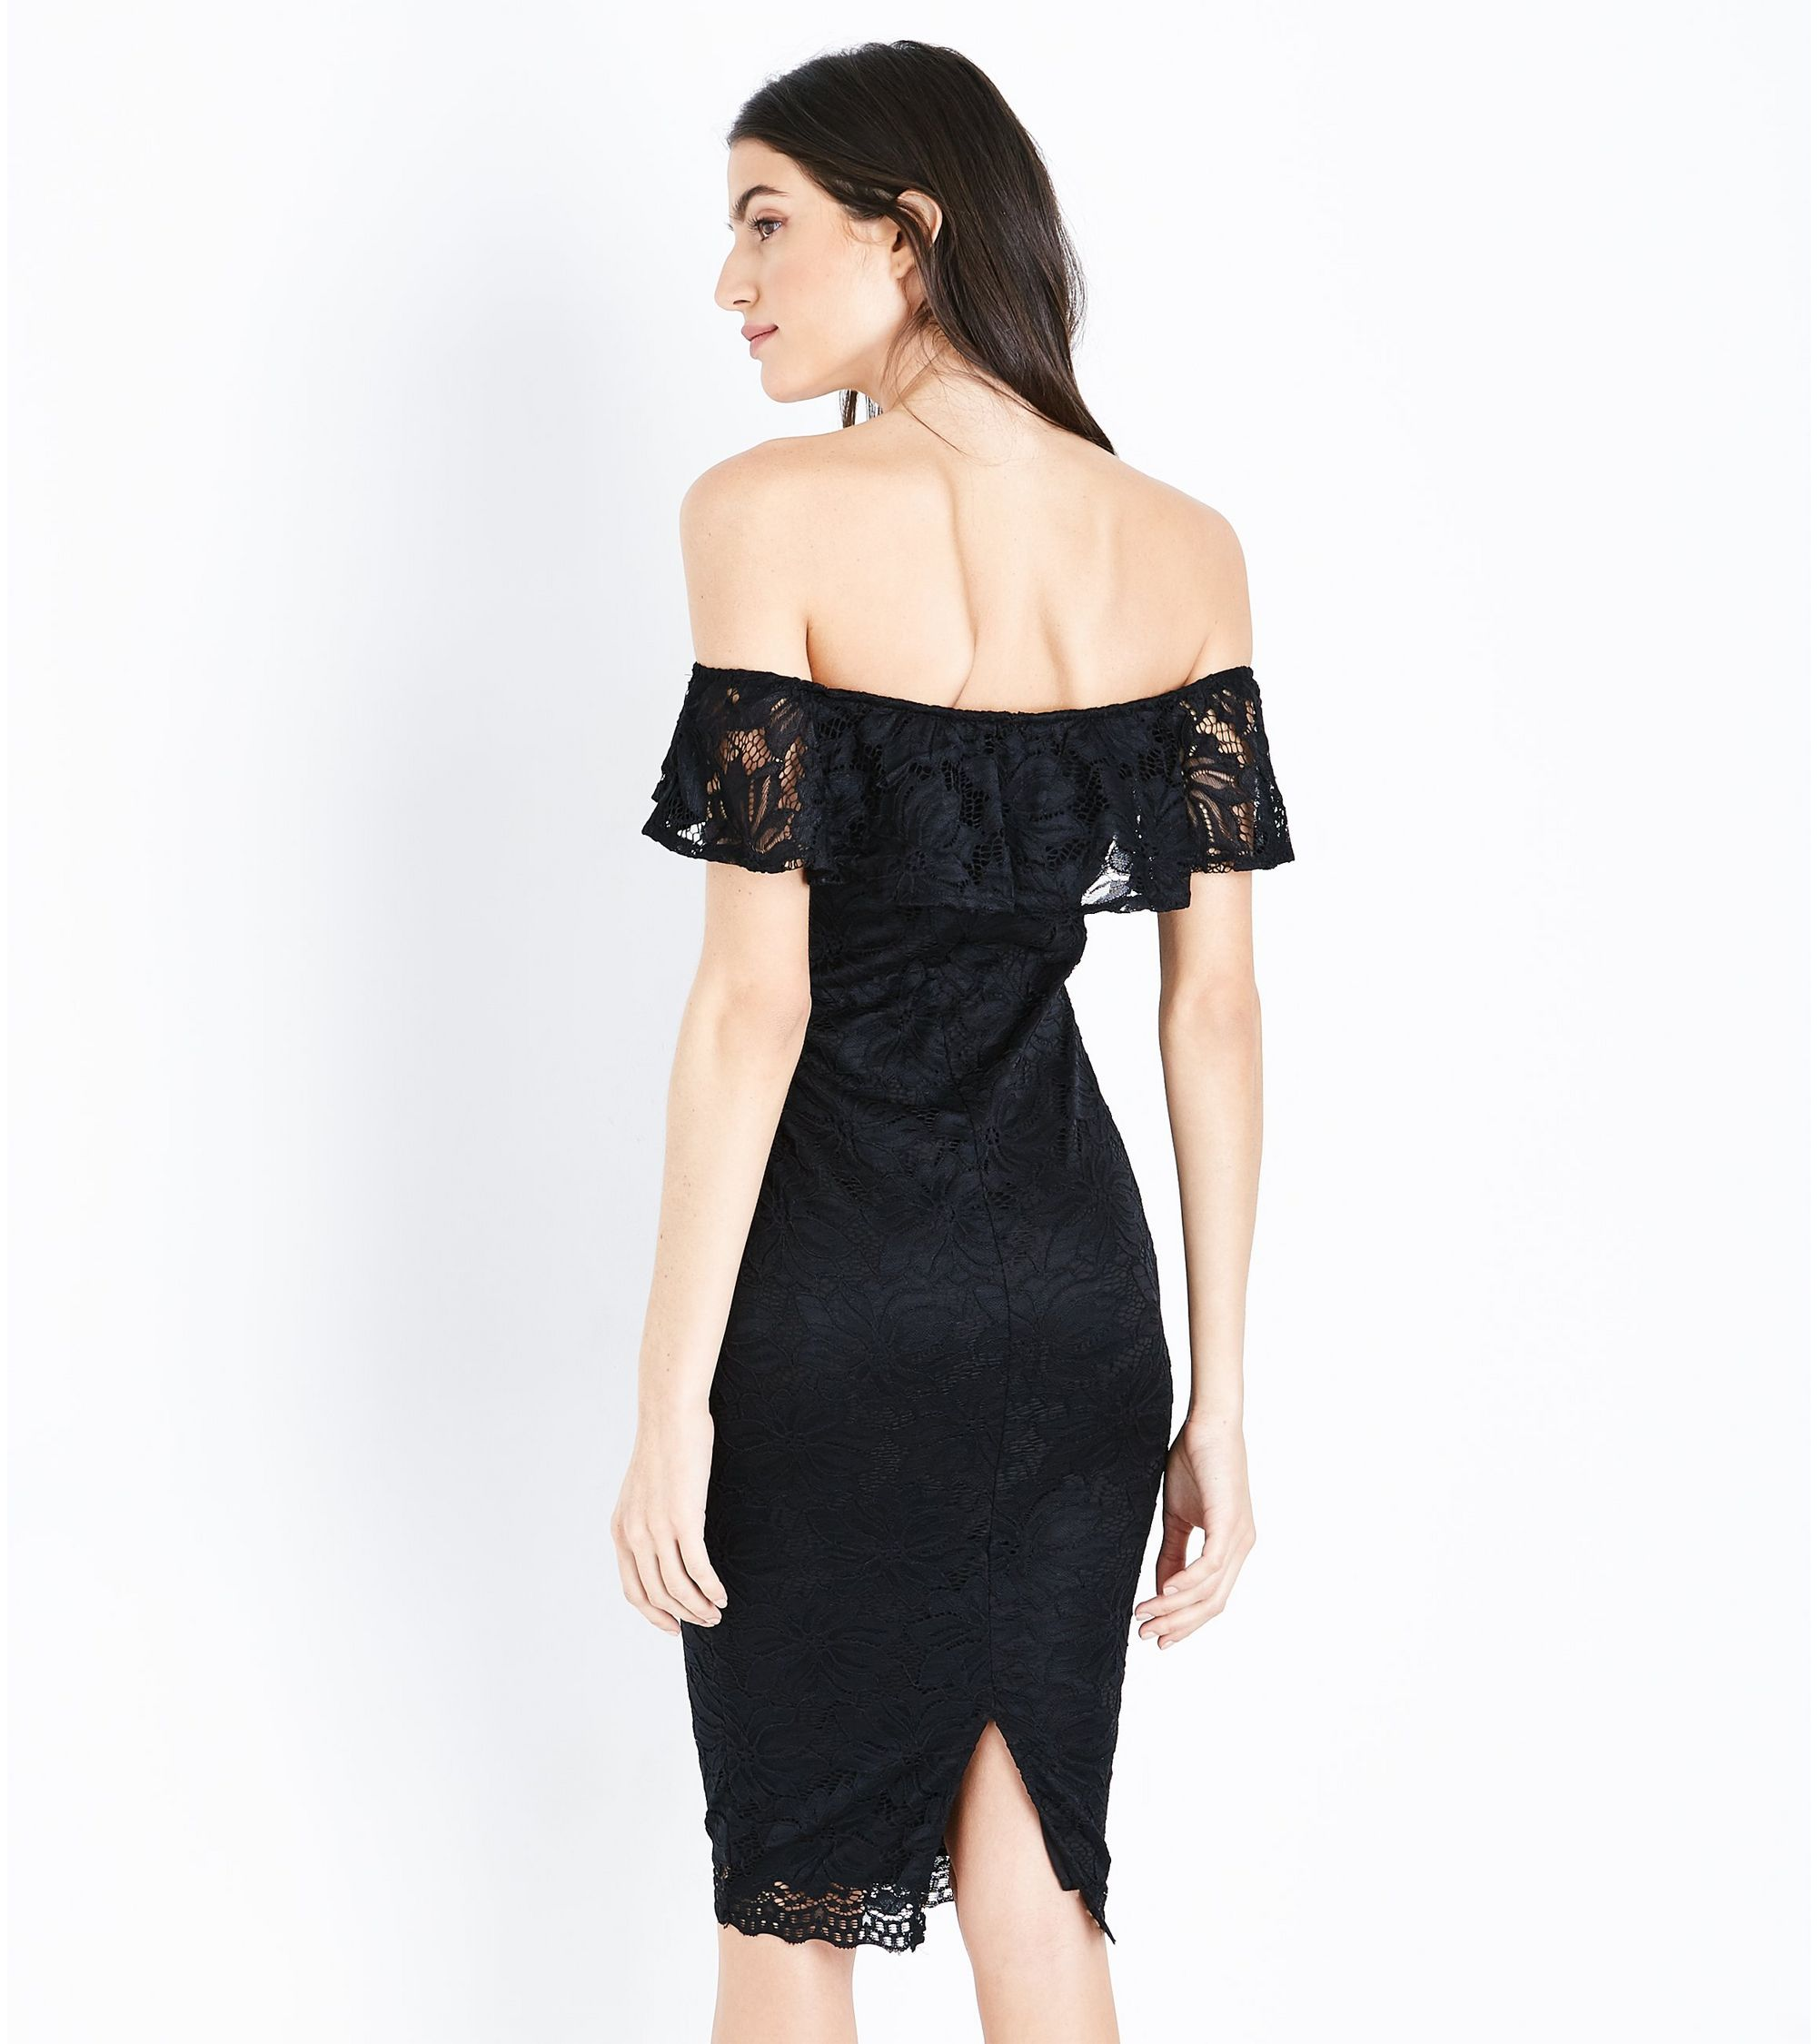 534106915f77 New Look Ax Paris Black Lace Dress - raveitsafe